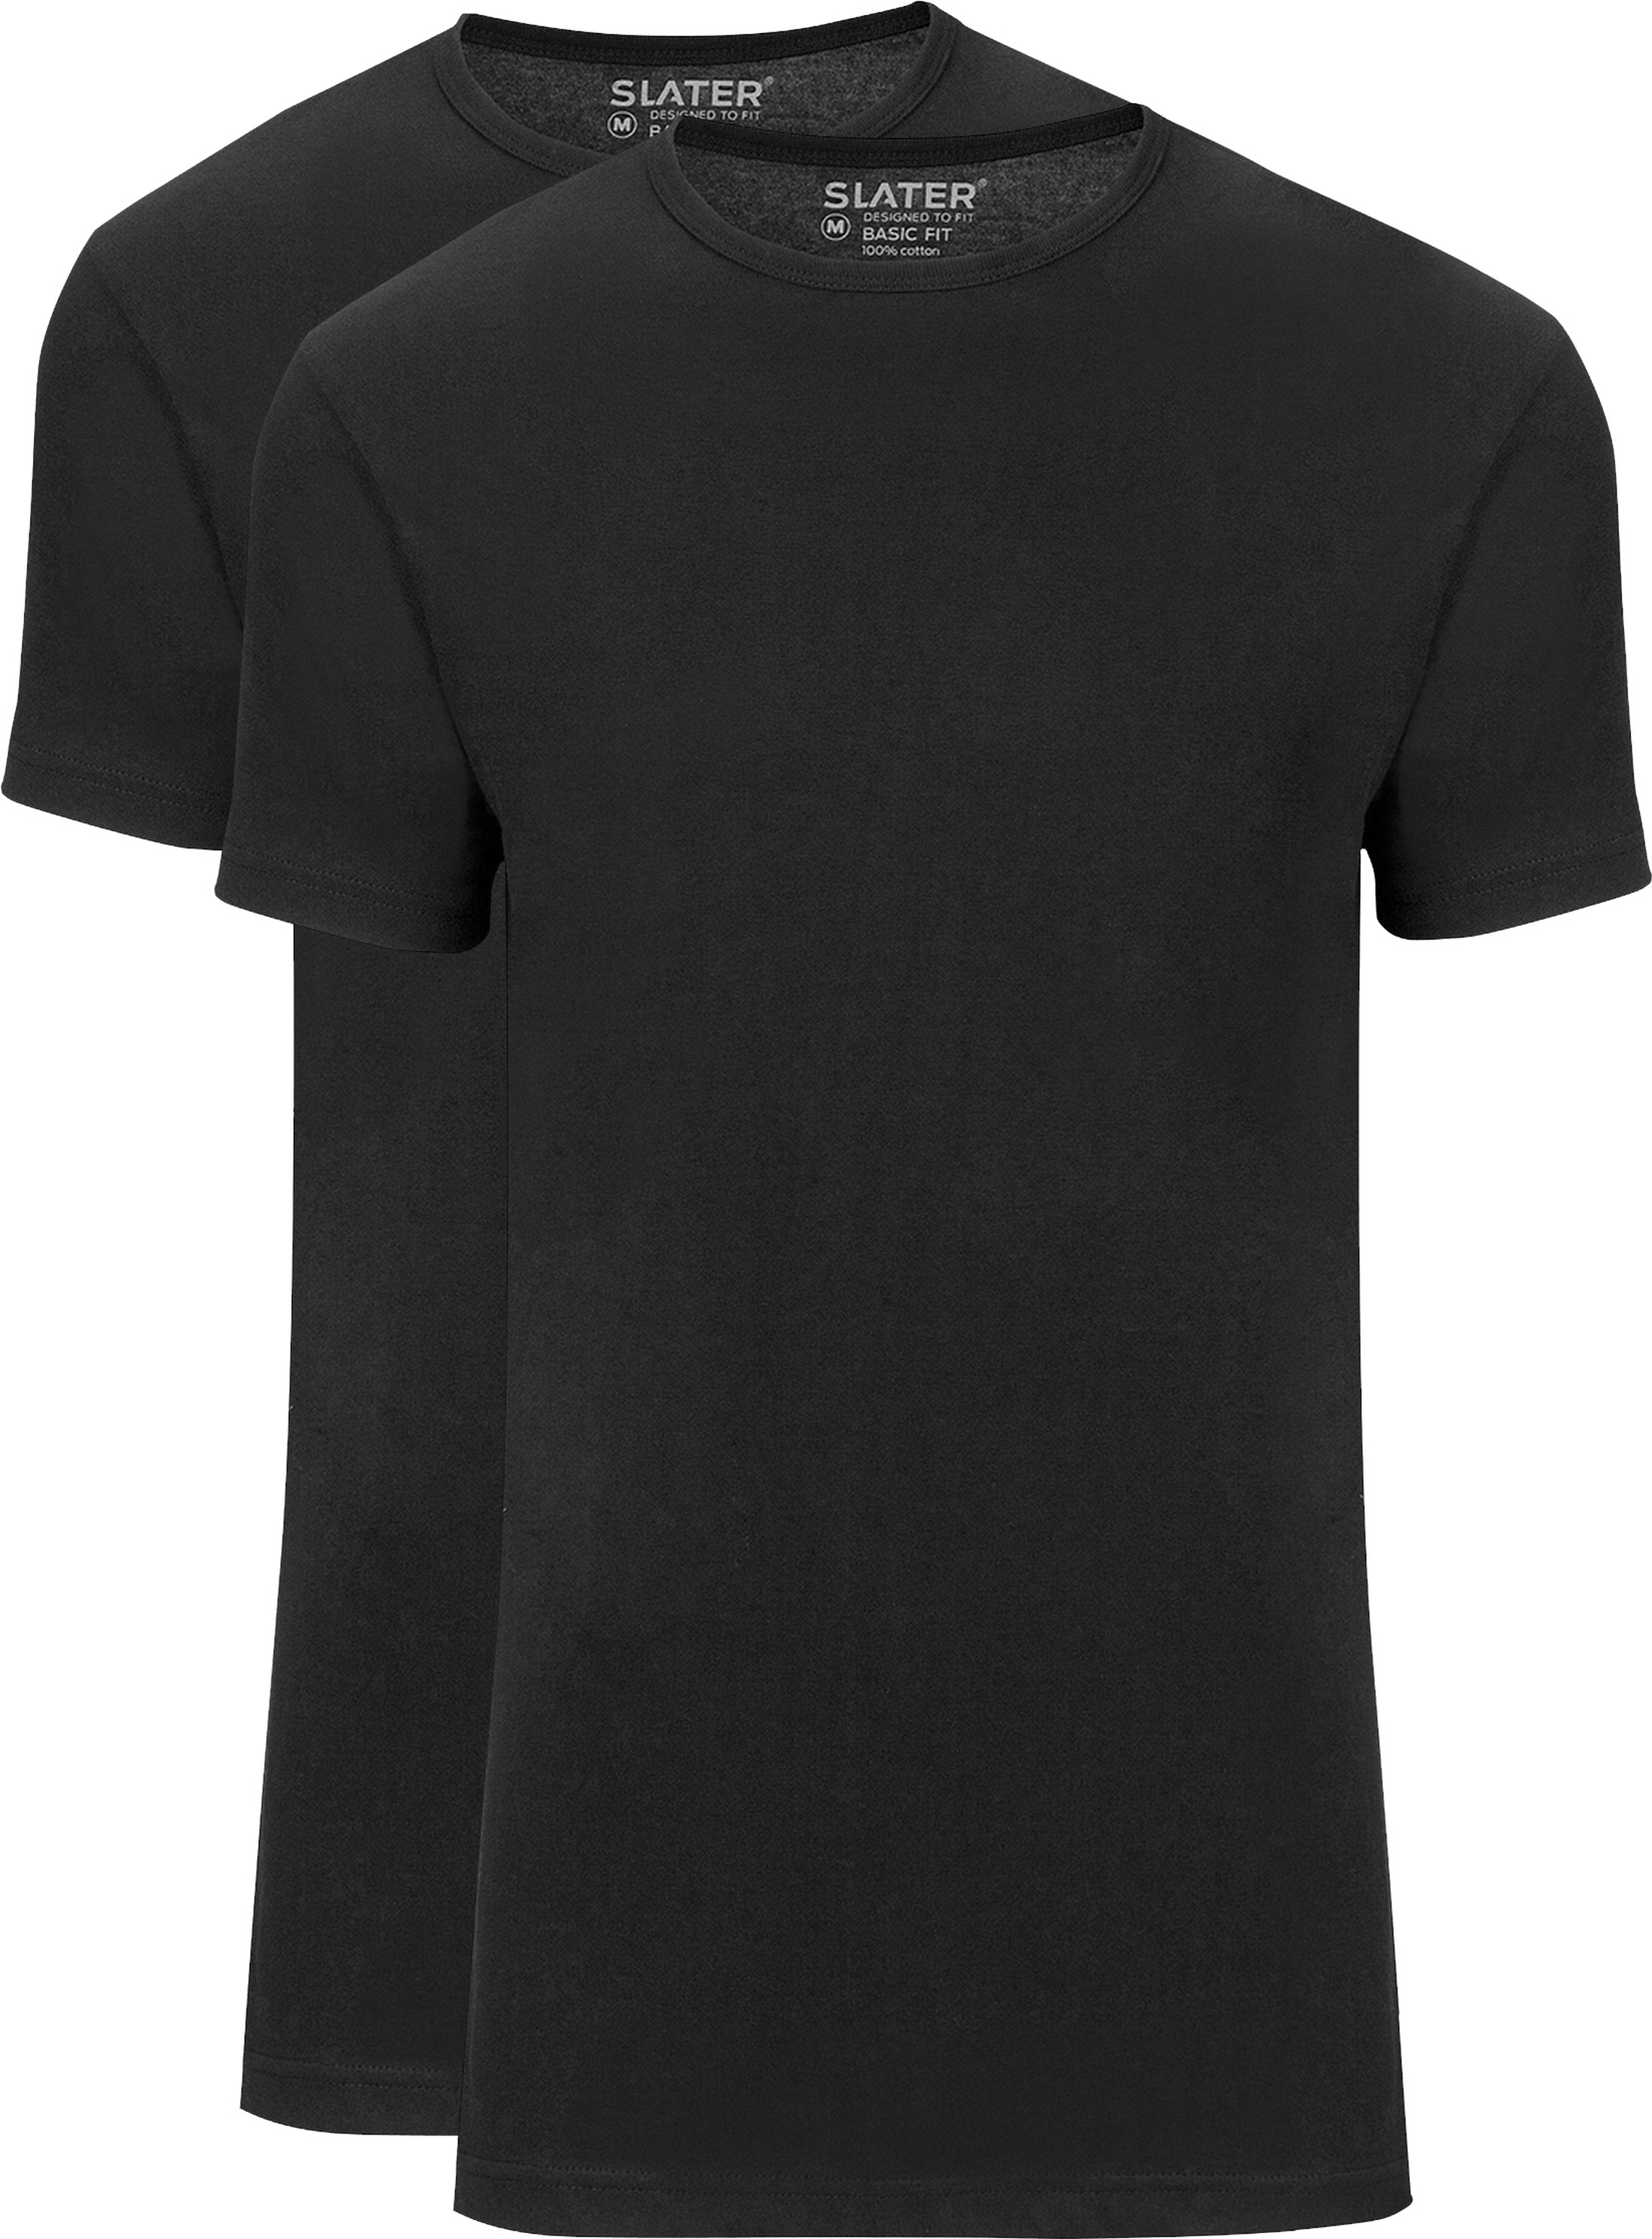 Slater 2-pack Basic Fit T-shirt Zwart foto 0